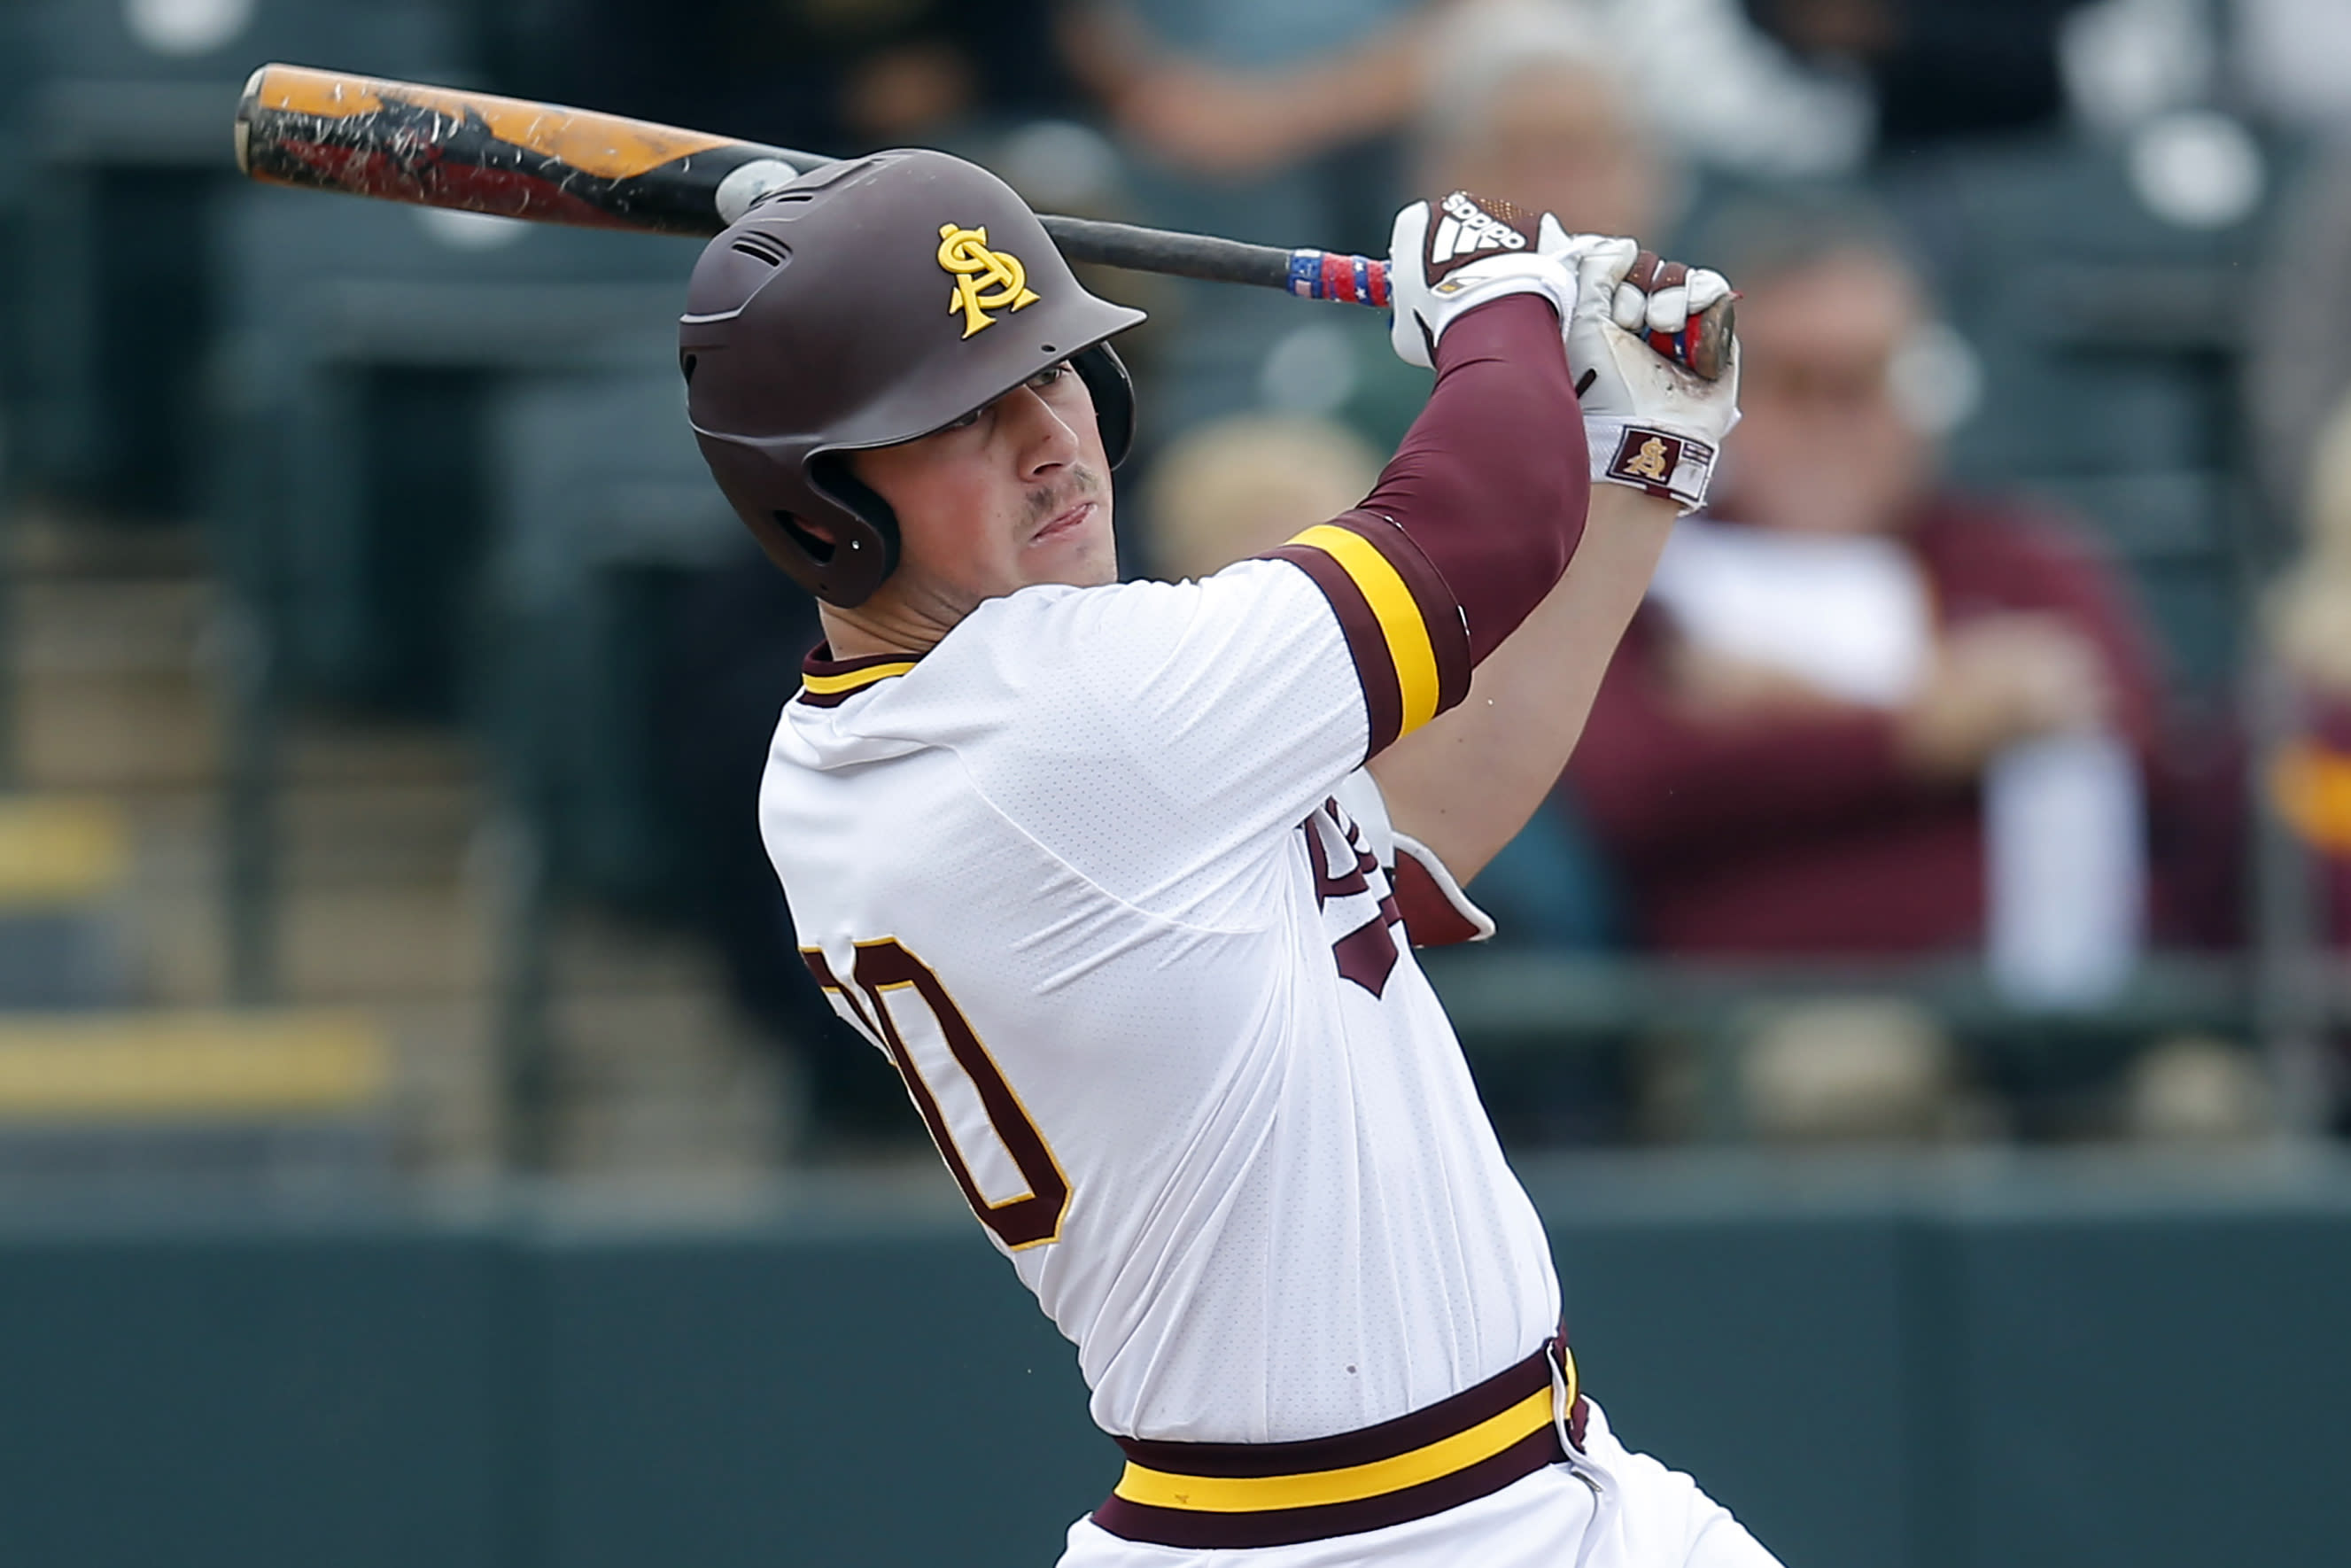 FILE - In this Feb. 17, 2019, file photo, Arizona State's Spencer Torkelson bats during an NCAA college baseball game against Notre Dame in Phoenix. Detroit drafted Arizona State first baseman Spencer Torkelson with the top pick in this week's draft, although the Tigers plan to try him across the diamond at third base. (AP Photo/Rick Scuteri, File)